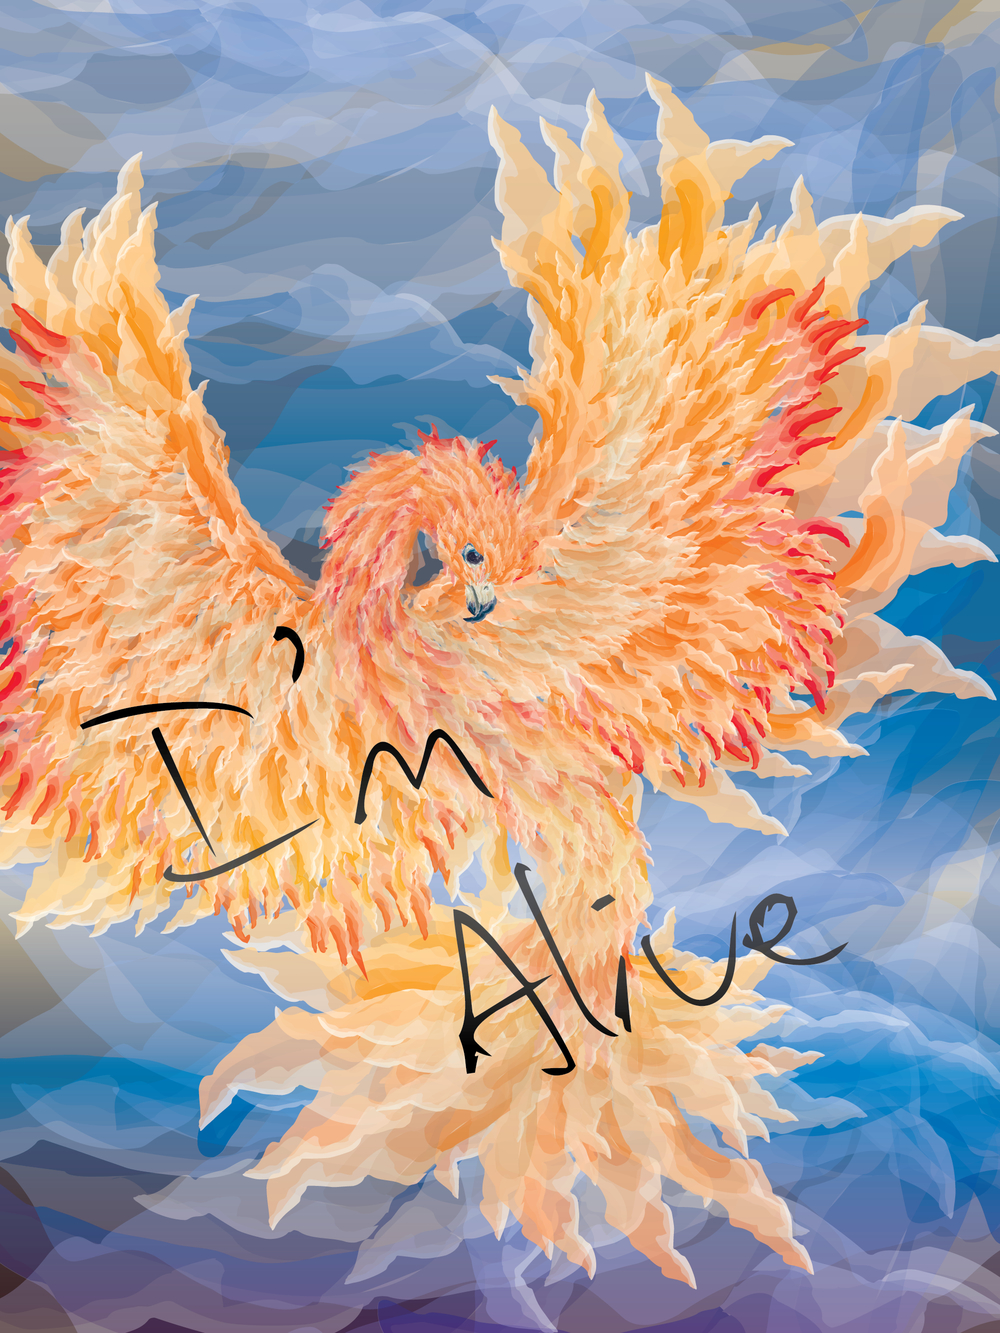 I'M ALIVE   One of the exhibitions works for the I'm Okay, You're Okay exhibit at Richard F. Brush Gallery. Using the iconic phoenix and light brush style, the work was meant to allow for a final uplifting feeling of rebirth, following the heavy themes in the rest of the exhibit. Created May 2014.